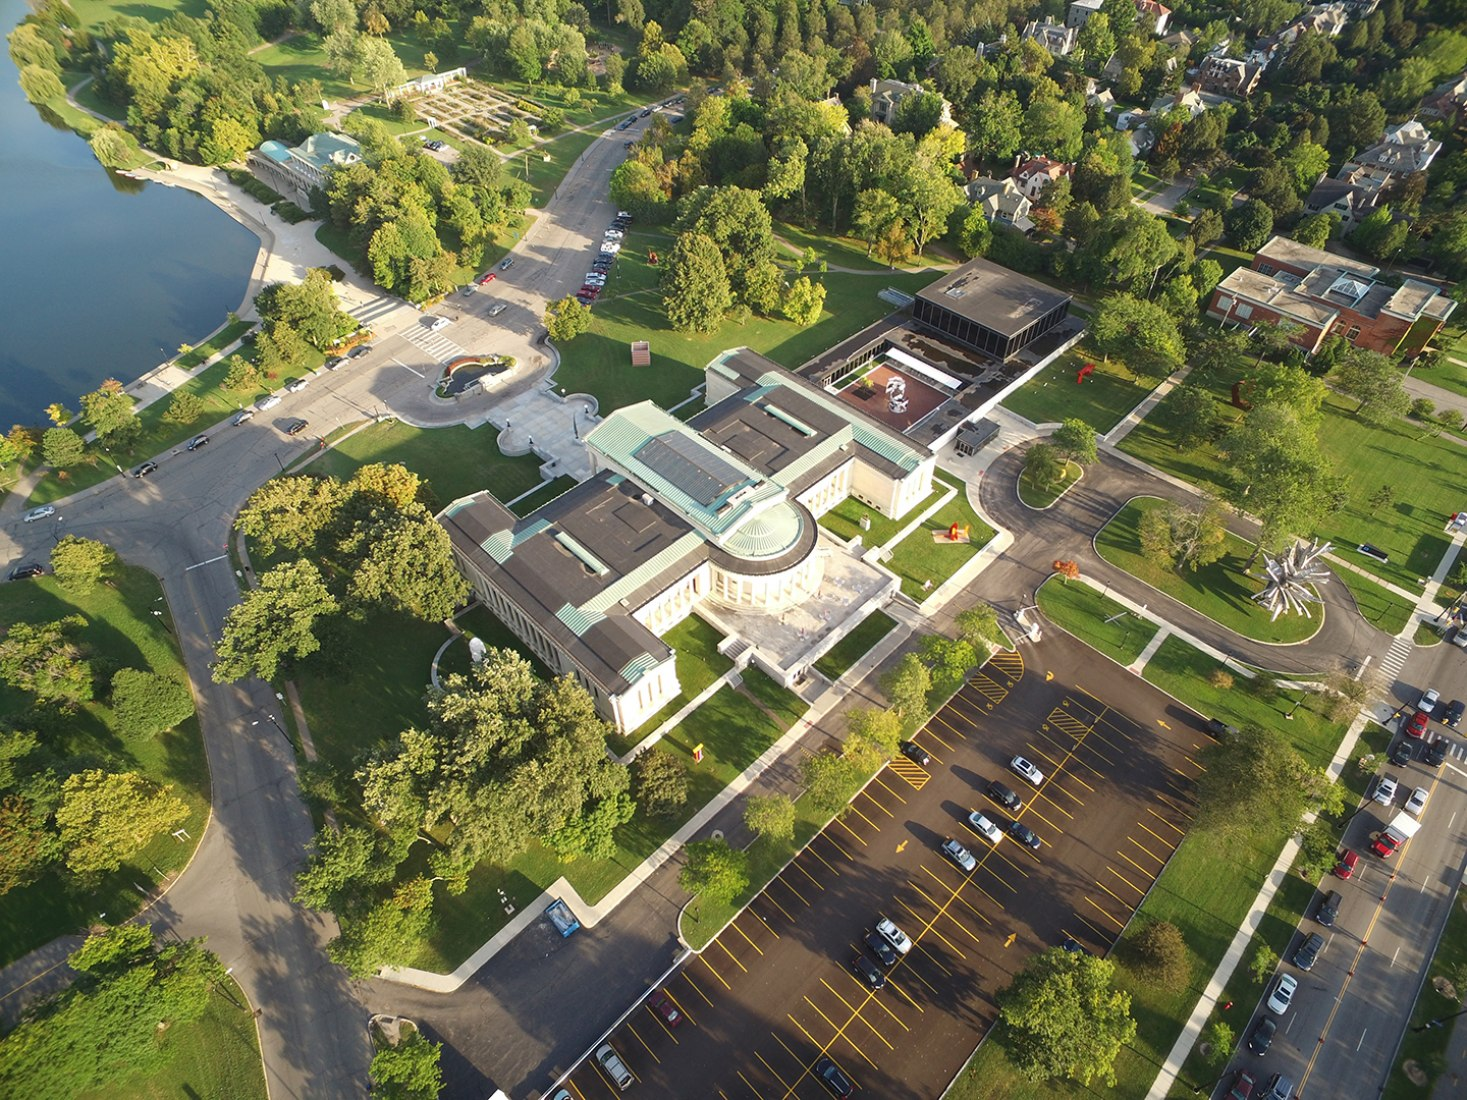 Albright-Knox Gallerie. Photograph © Marc Dellas